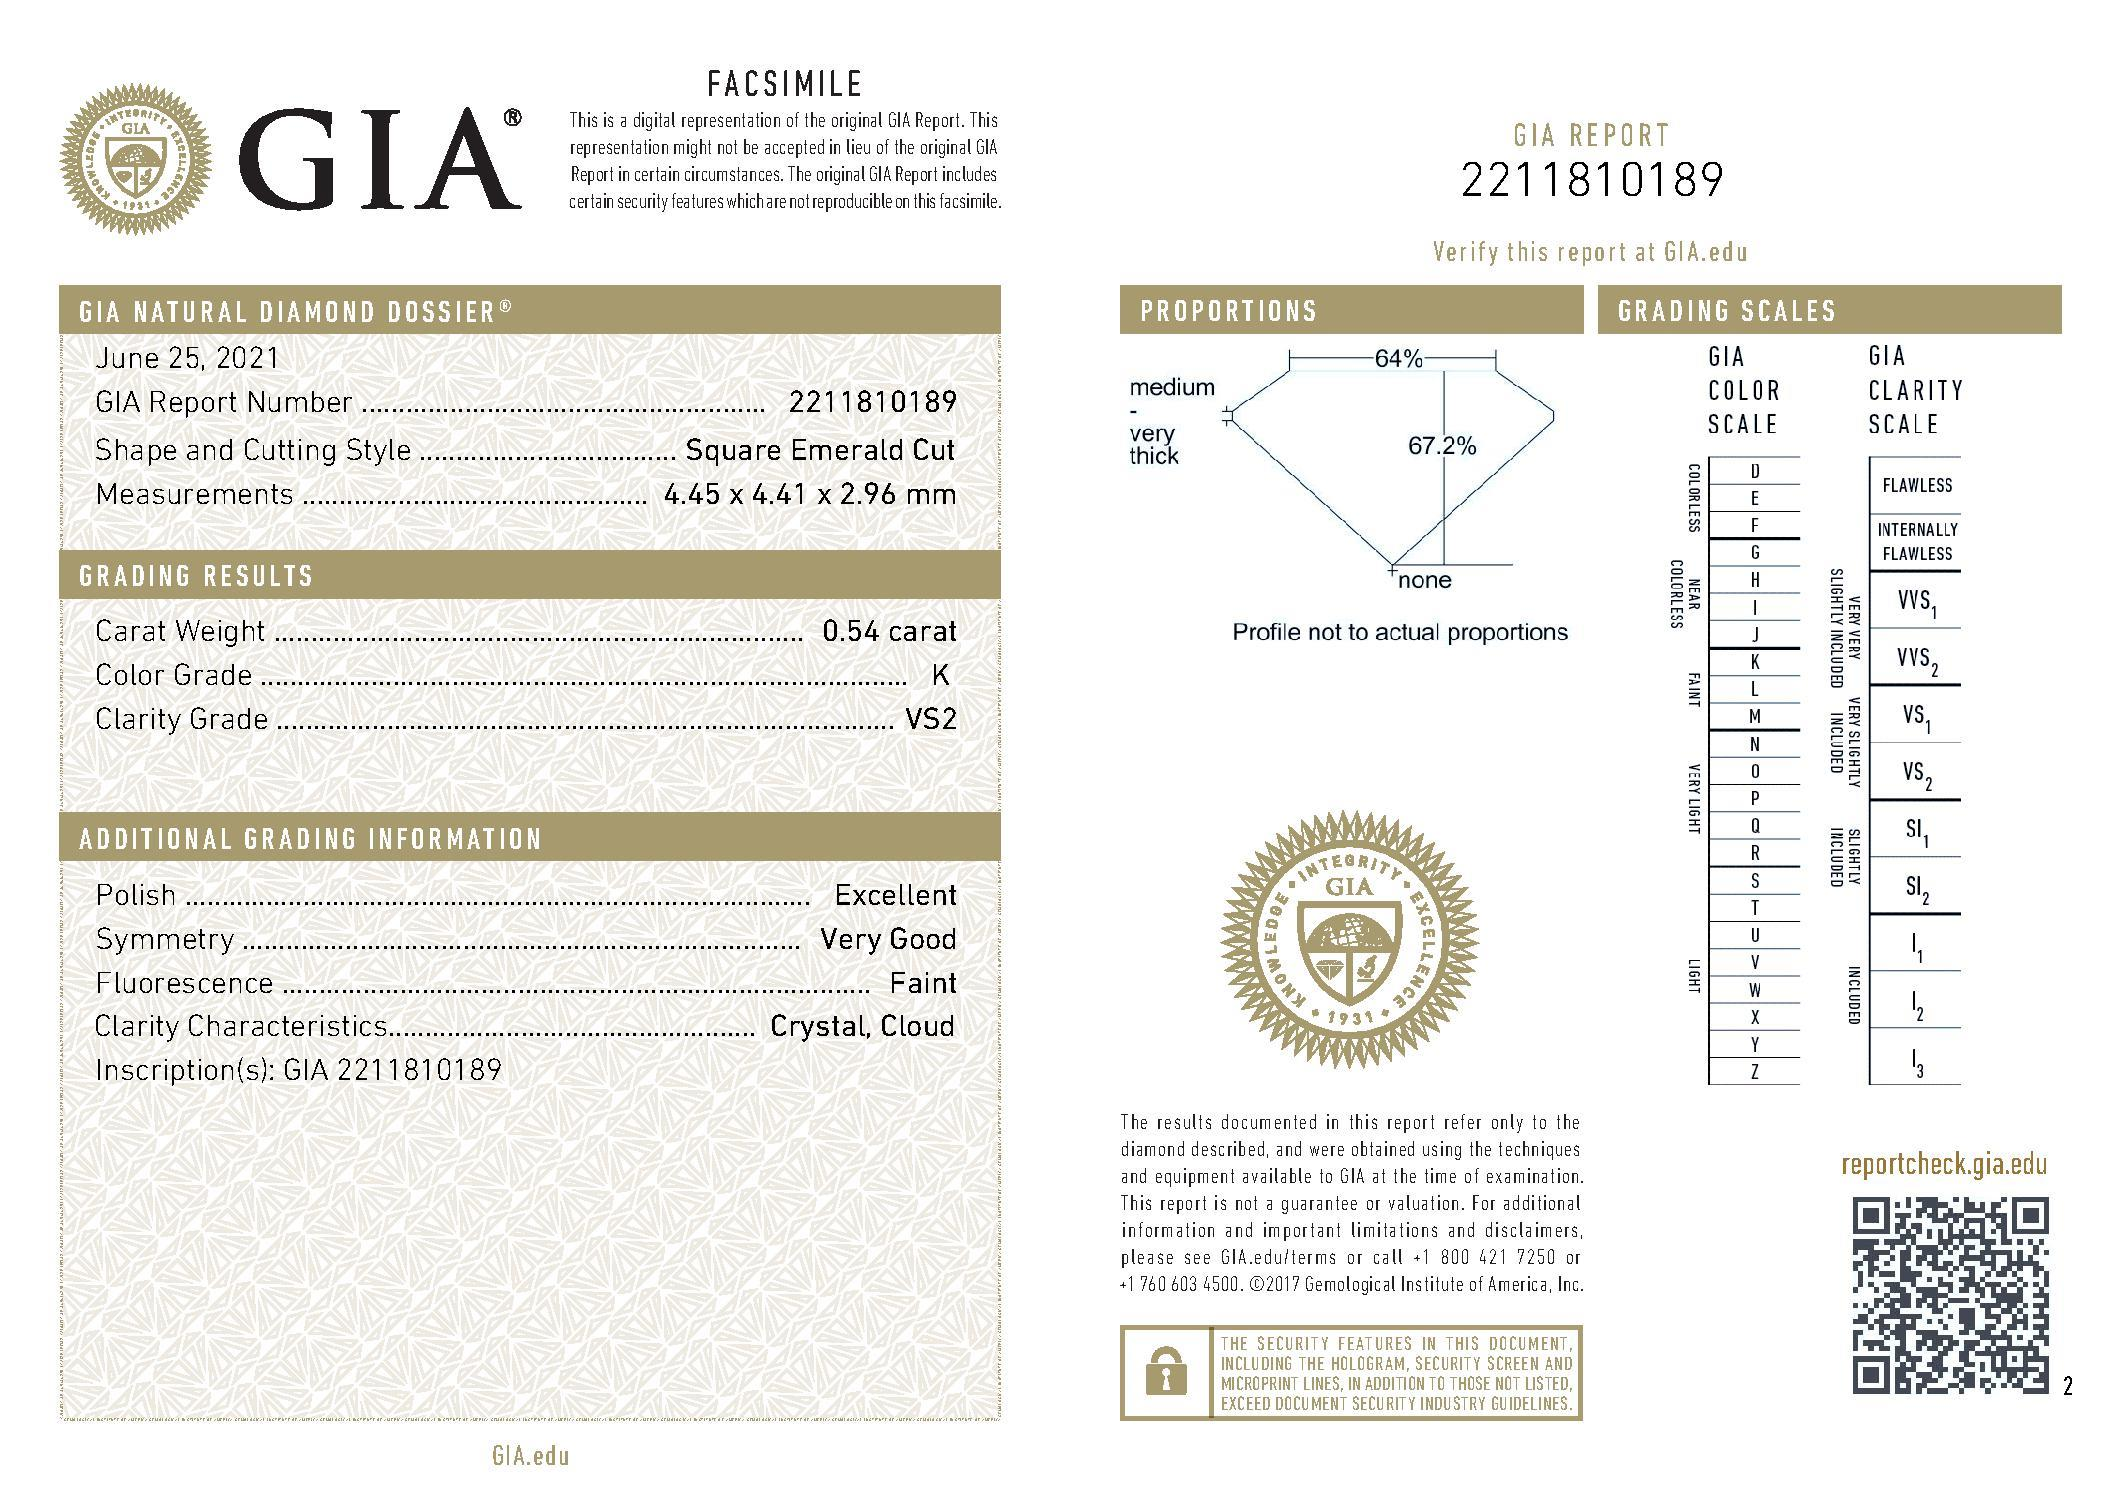 This is a 0.54 carat asscher shape, K color, VS2 clarity natural diamond accompanied by a GIA grading report.